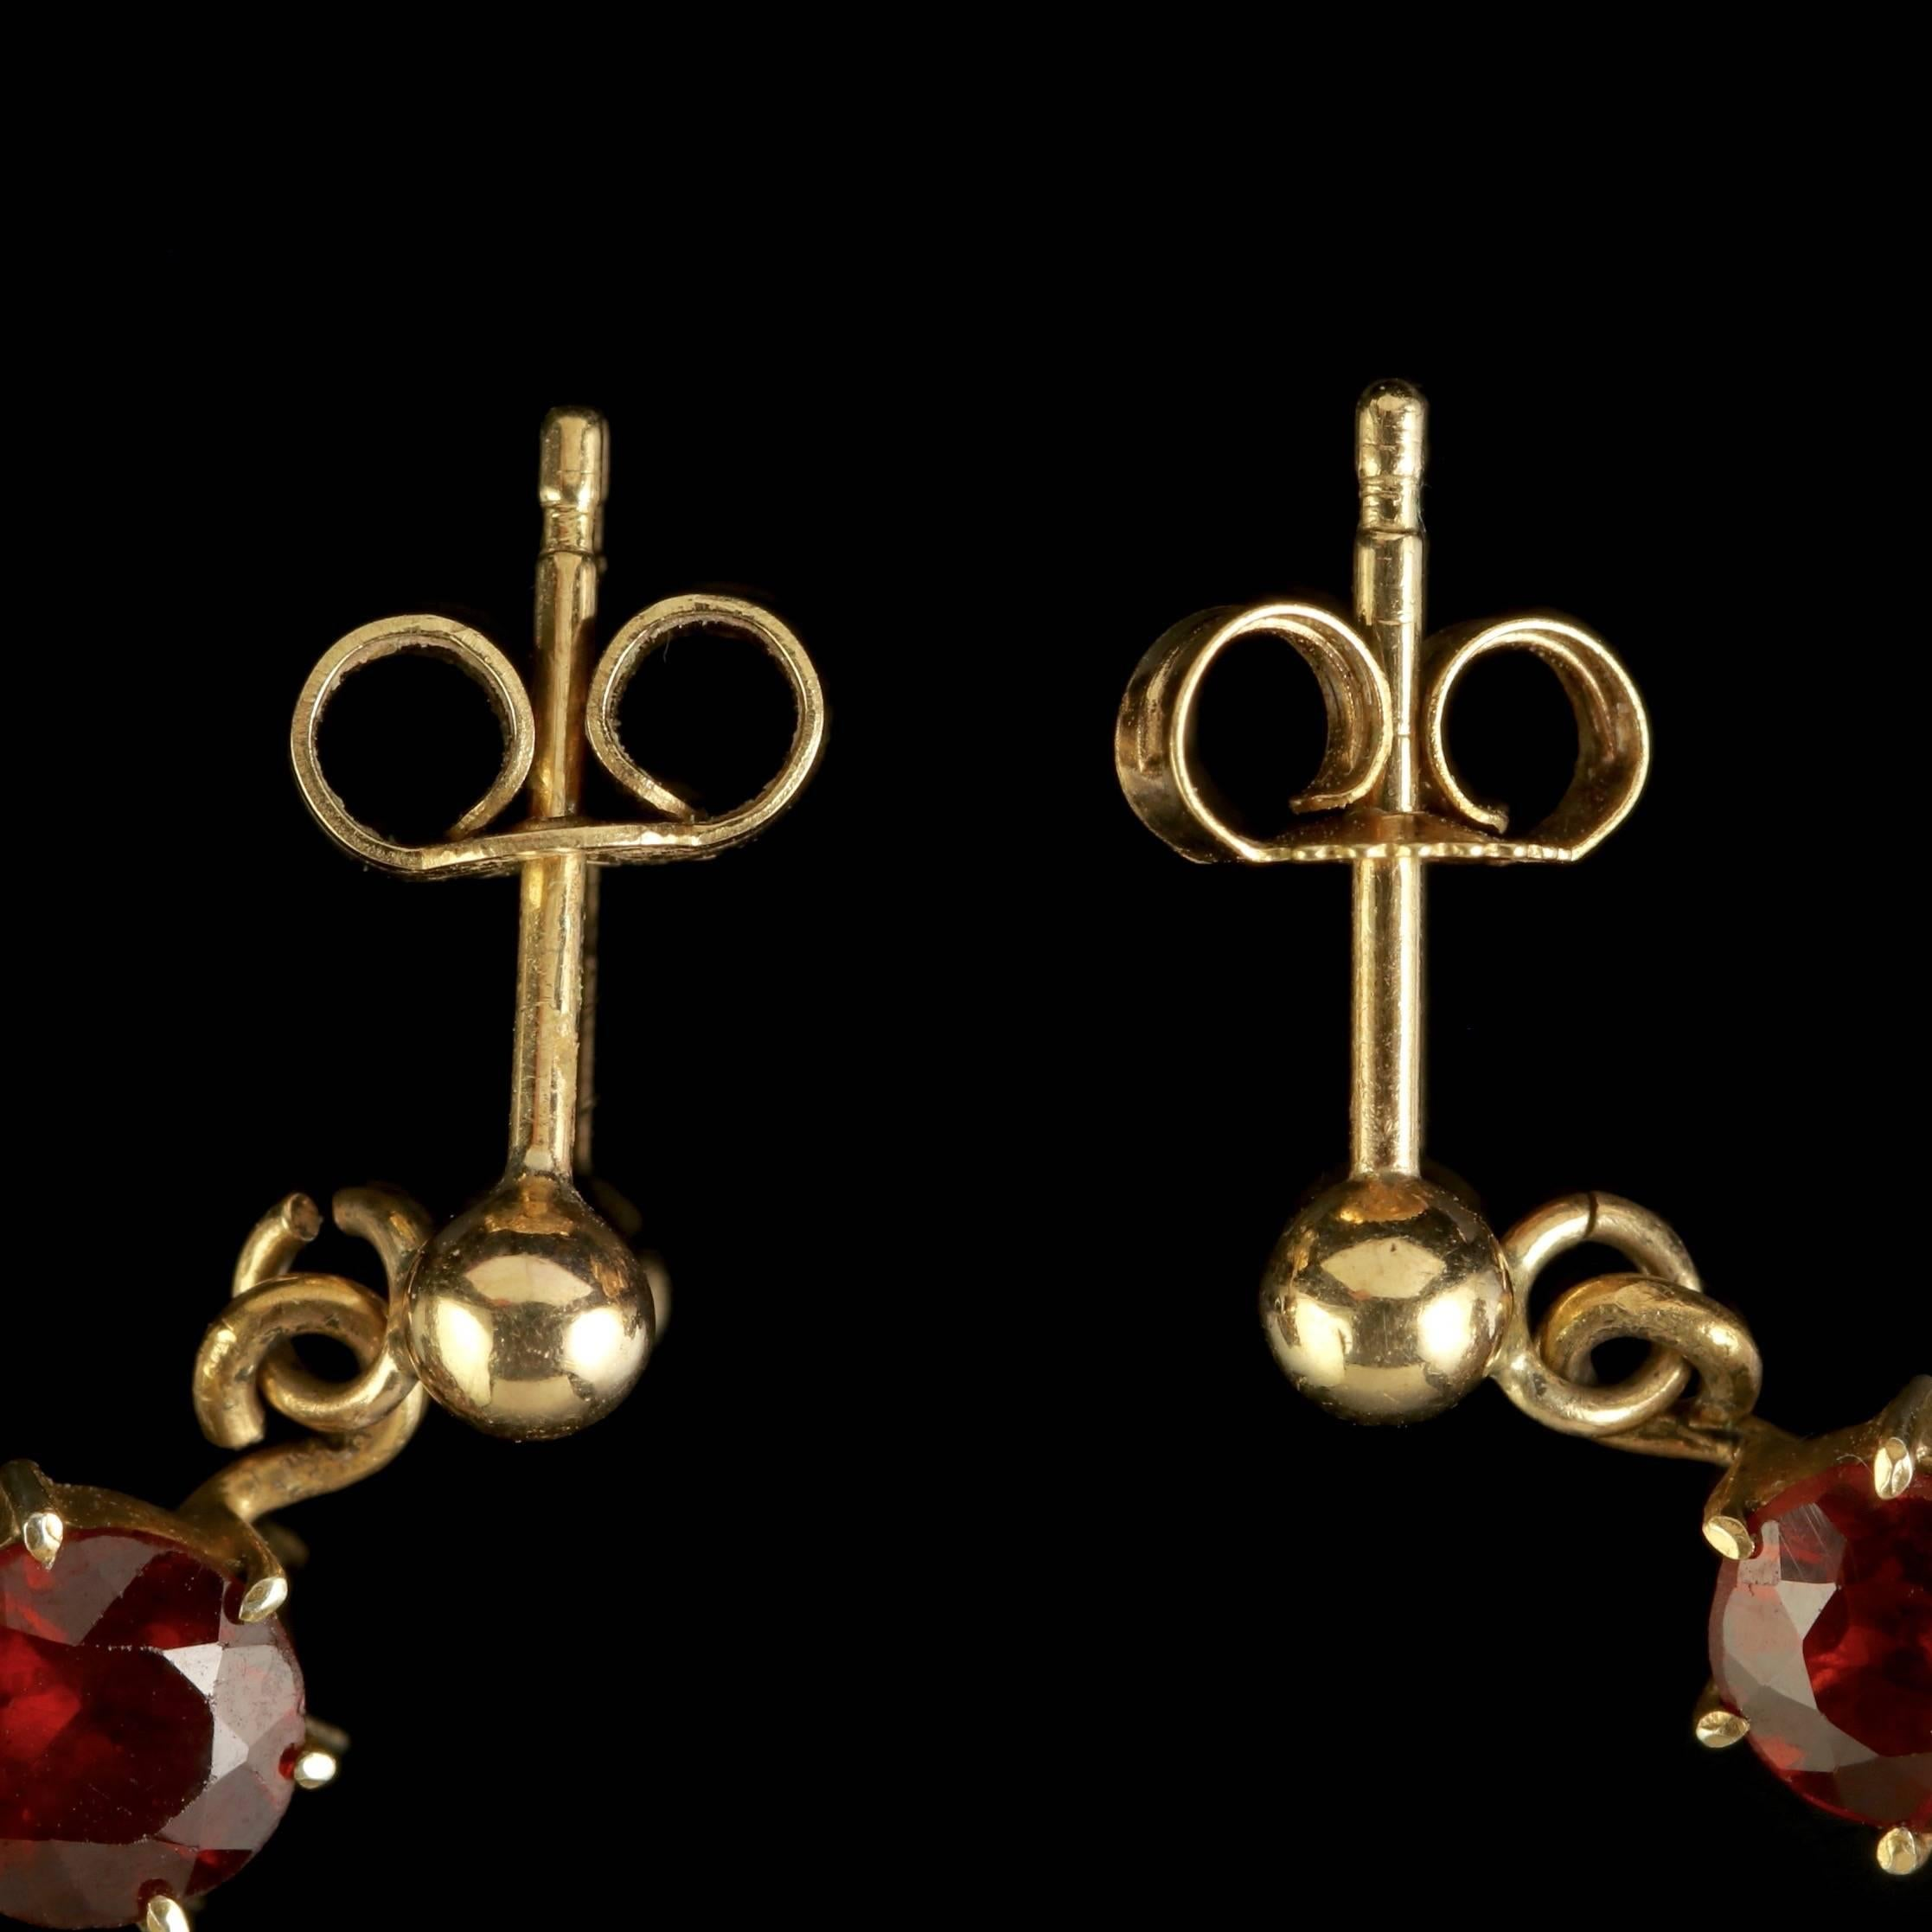 gold earrings rubelite victorian products antique diamond rozental